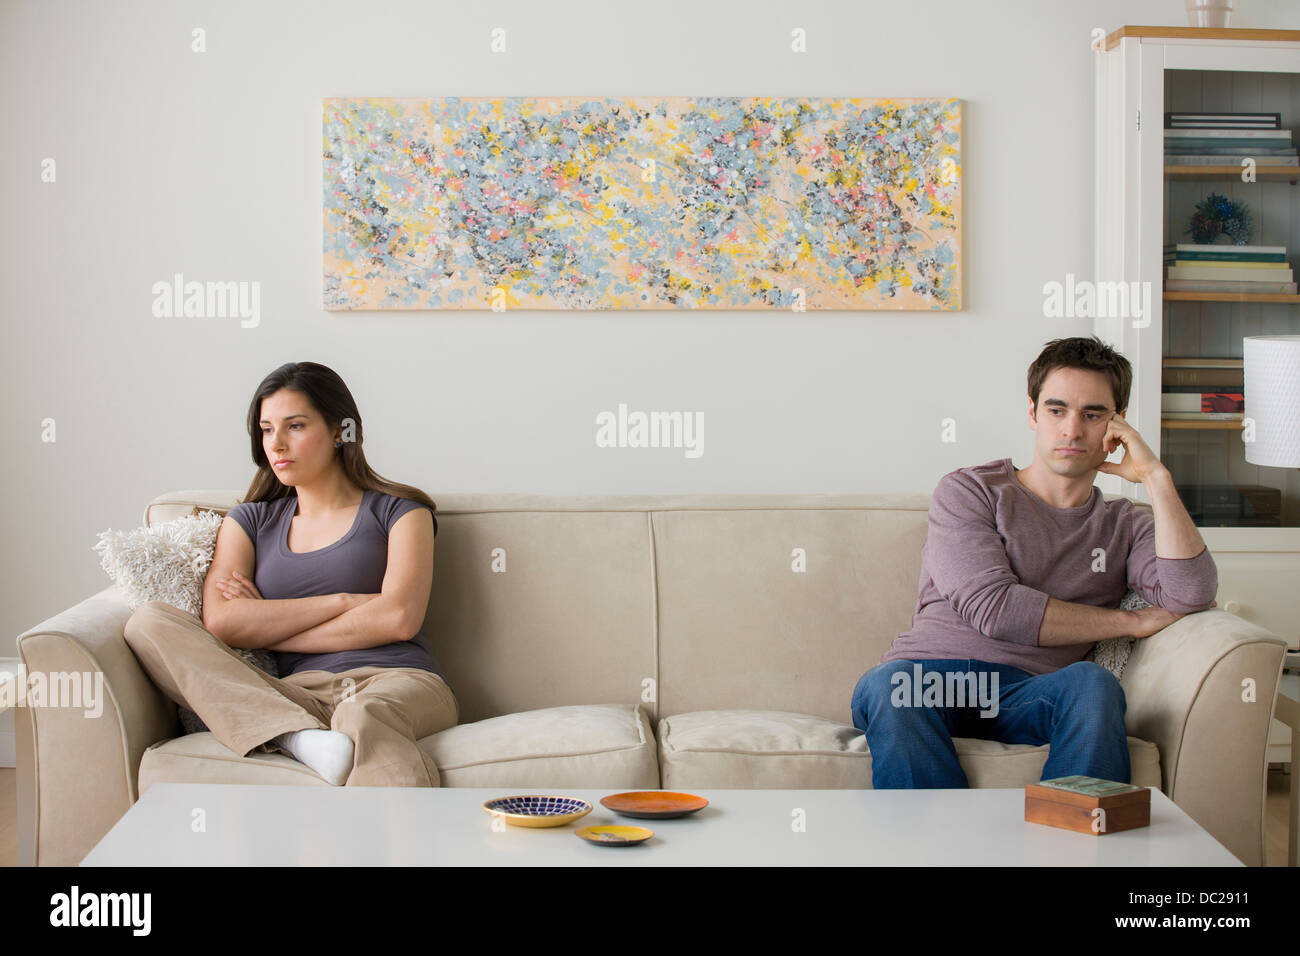 Couple sitting on sofa ignoring each other - Stock Image